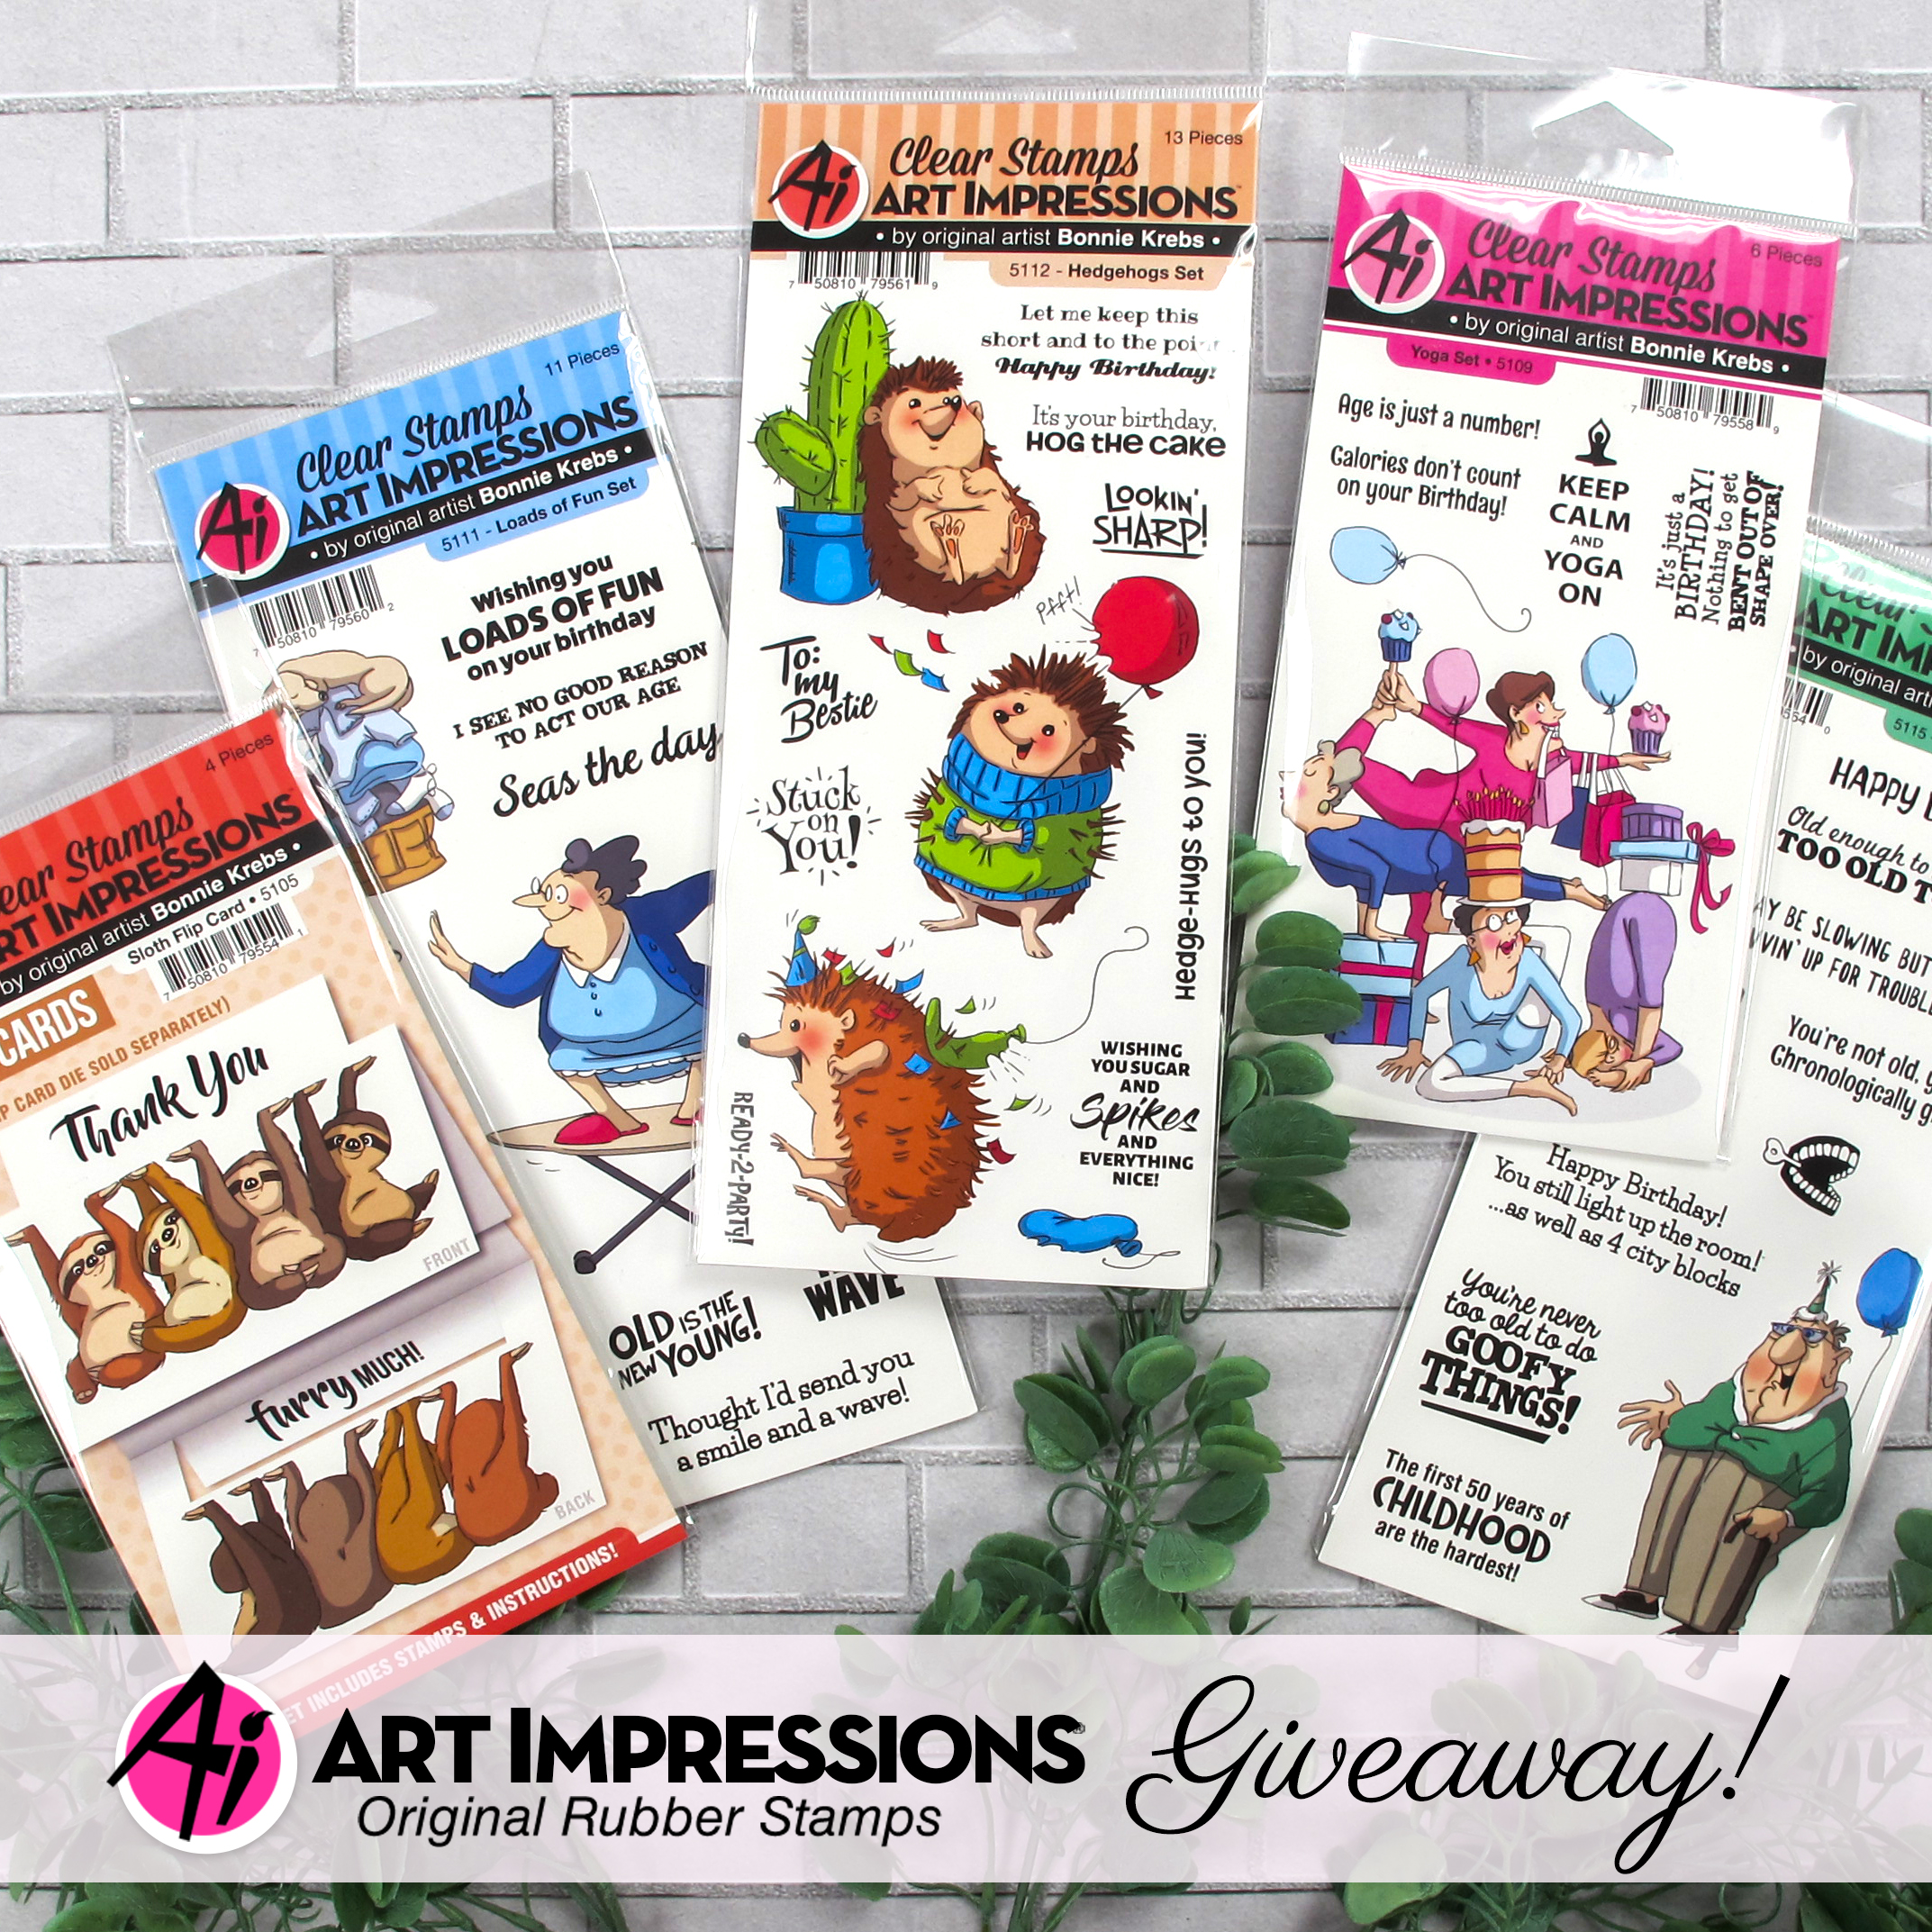 Art Impressions Clear Stamps Prize Package Giveway